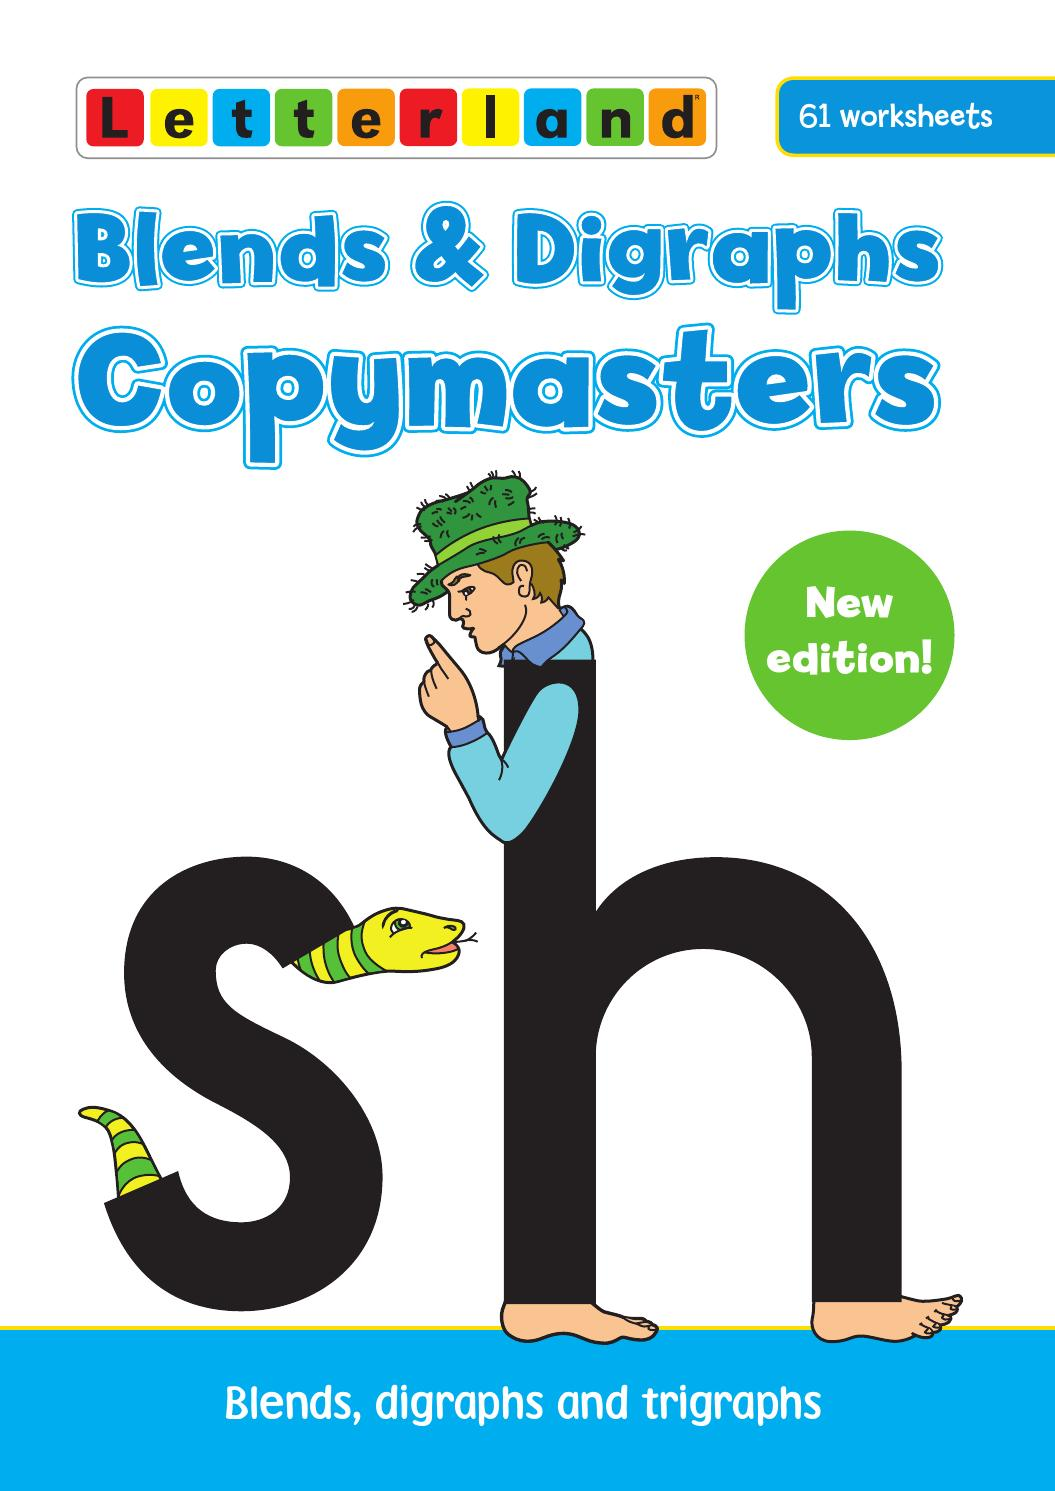 Workbooks r blend worksheets : Blends and Digraphs Copymasters by Letterland - issuu